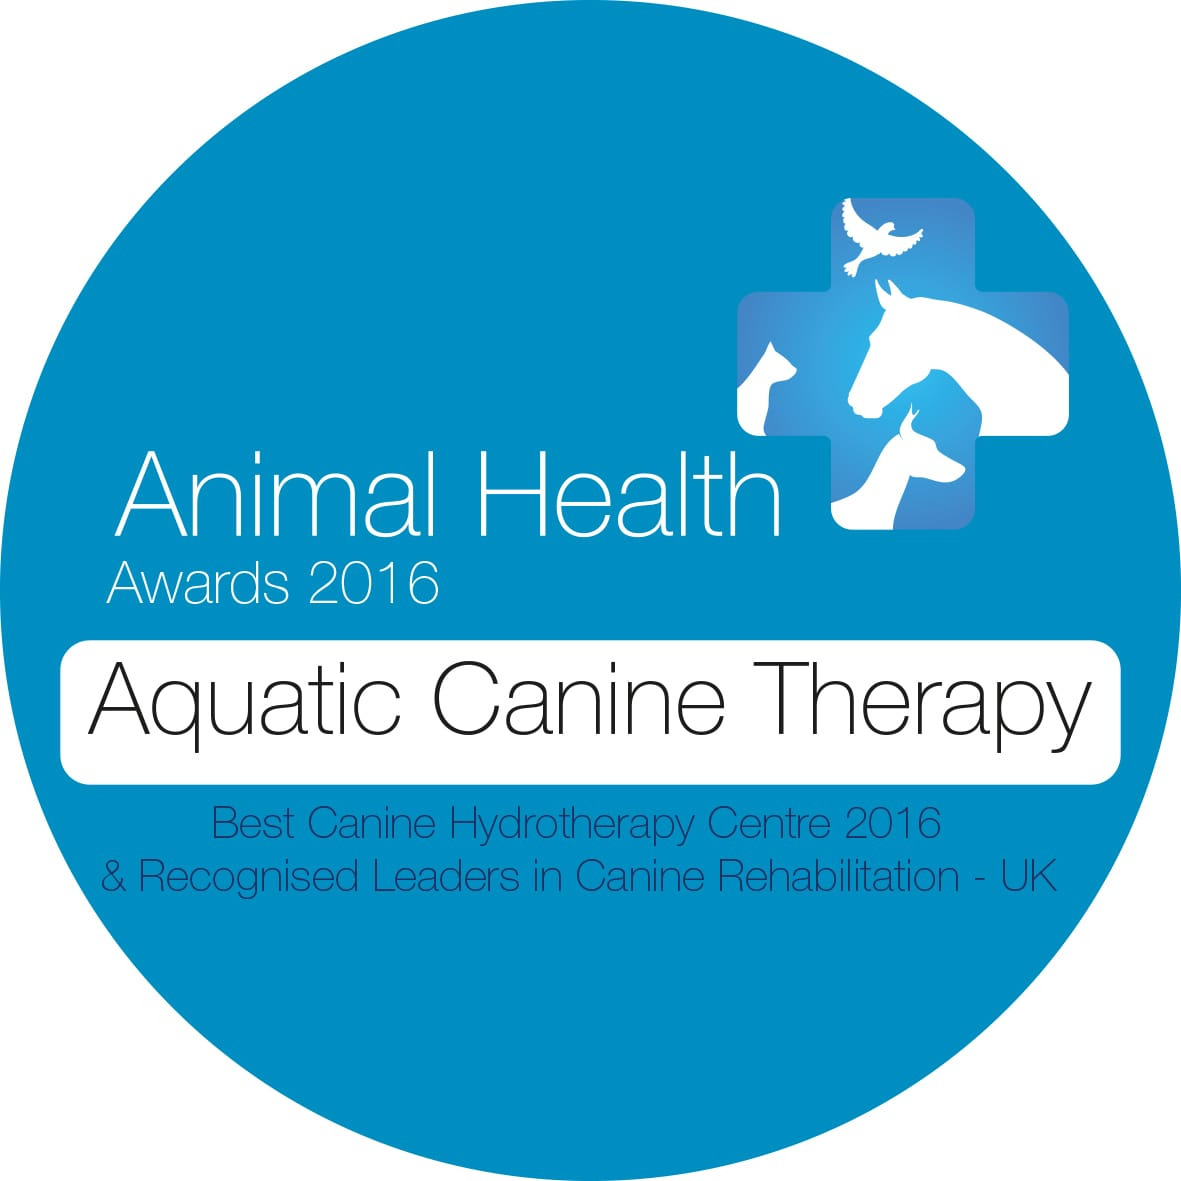 This is the animal health award 2016 for Aquatic Canine Therapy